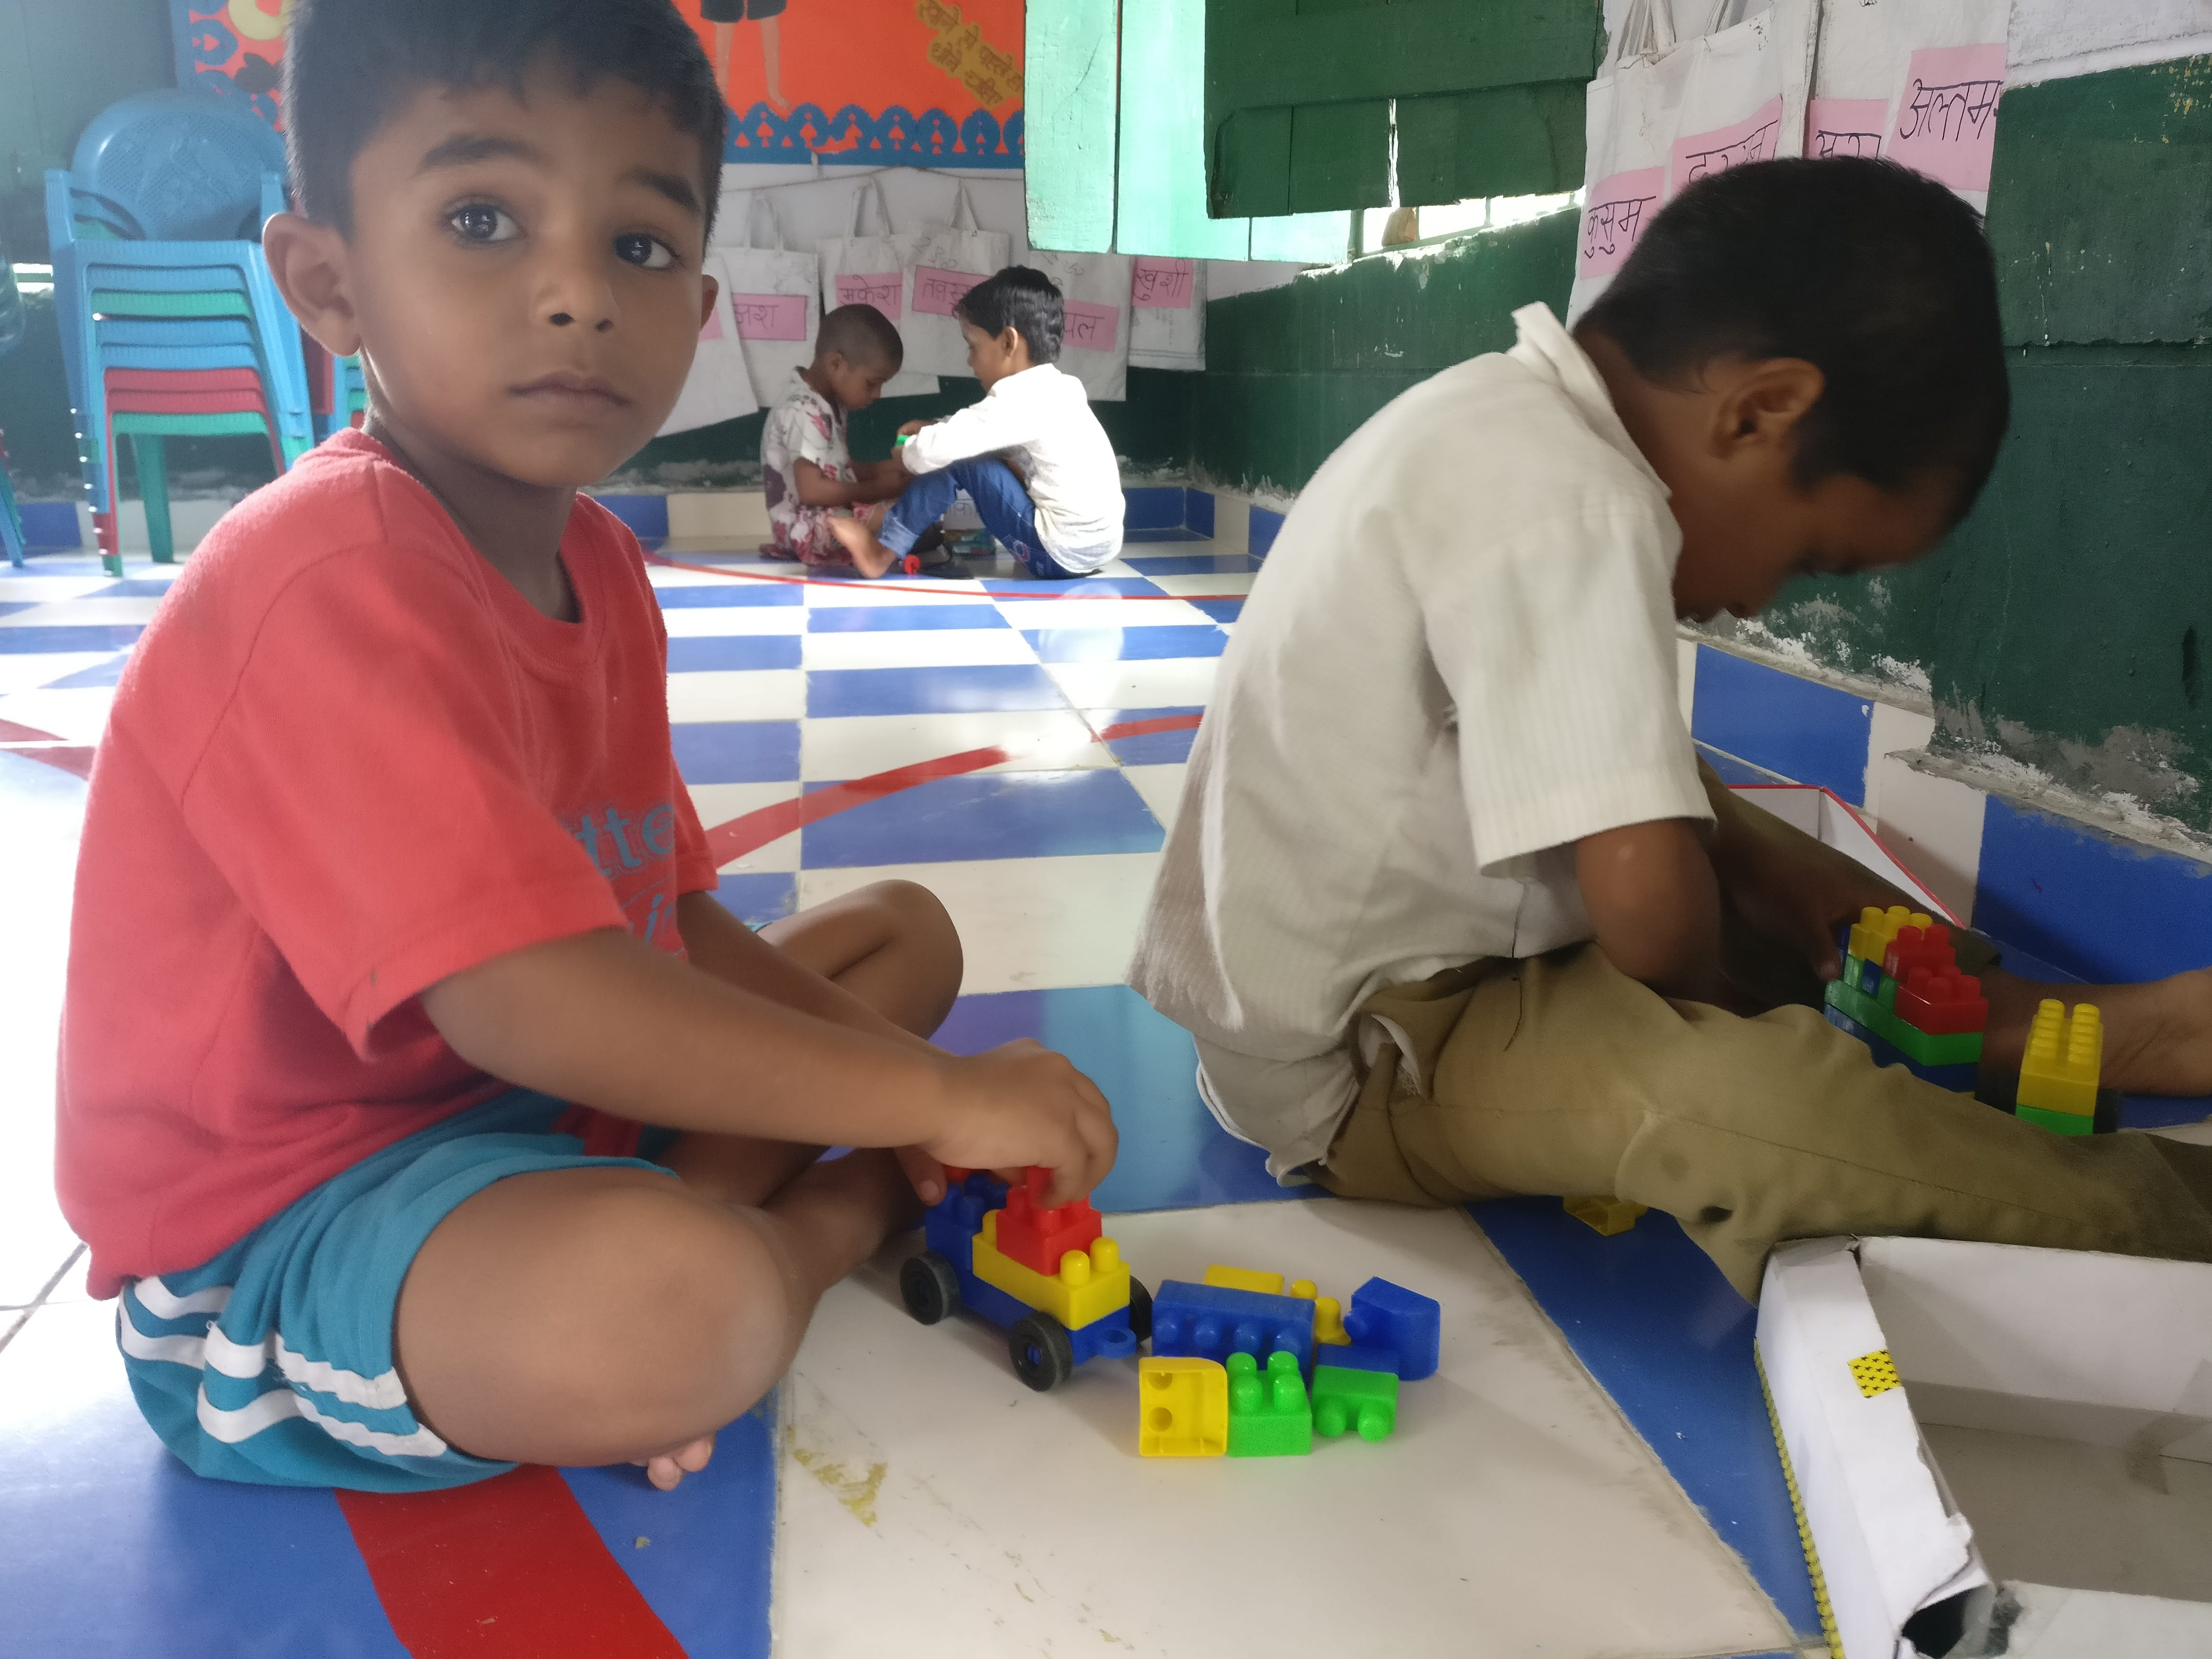 Altamas, 5, and his friend play with building blocks. Play areas are defined with tape. Bags with name tags hanging on the wall were made with the packaging the nutritional supplement came in. Photo credit: Shreya Roy Chowdhury